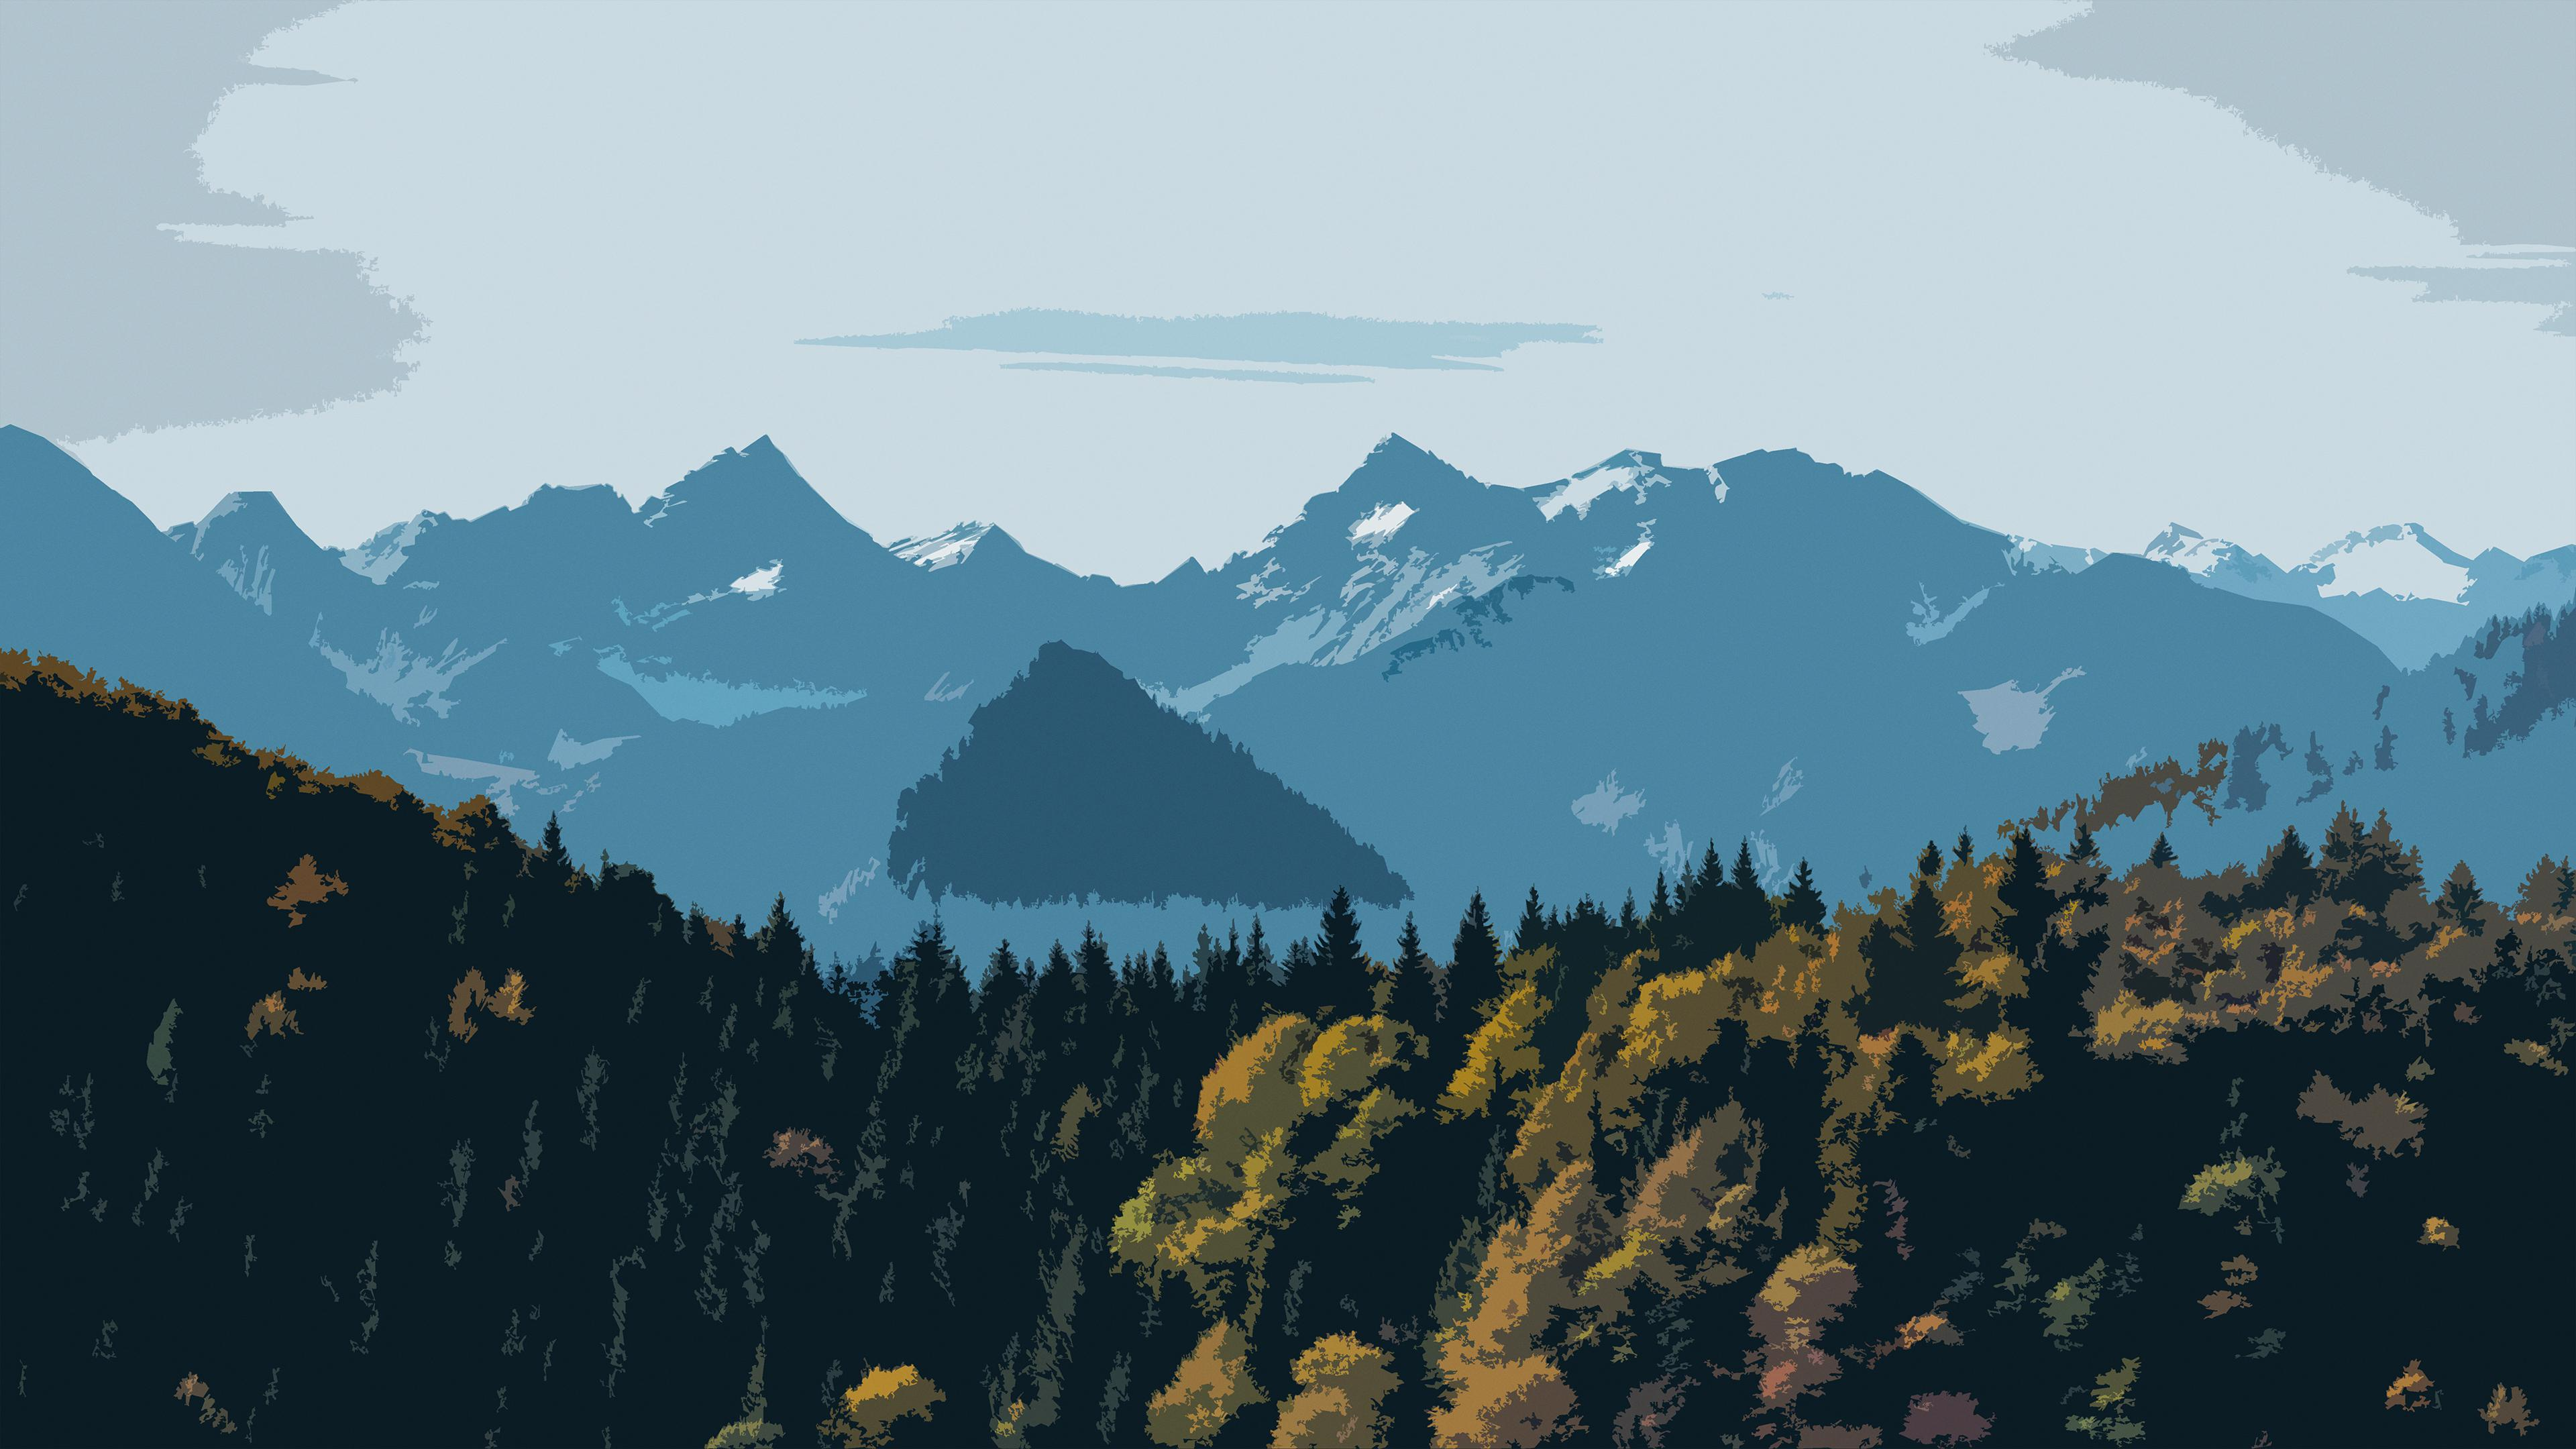 Vector 4k Wallpapers For Your Desktop Or Mobile Screen Free And Easy To Download